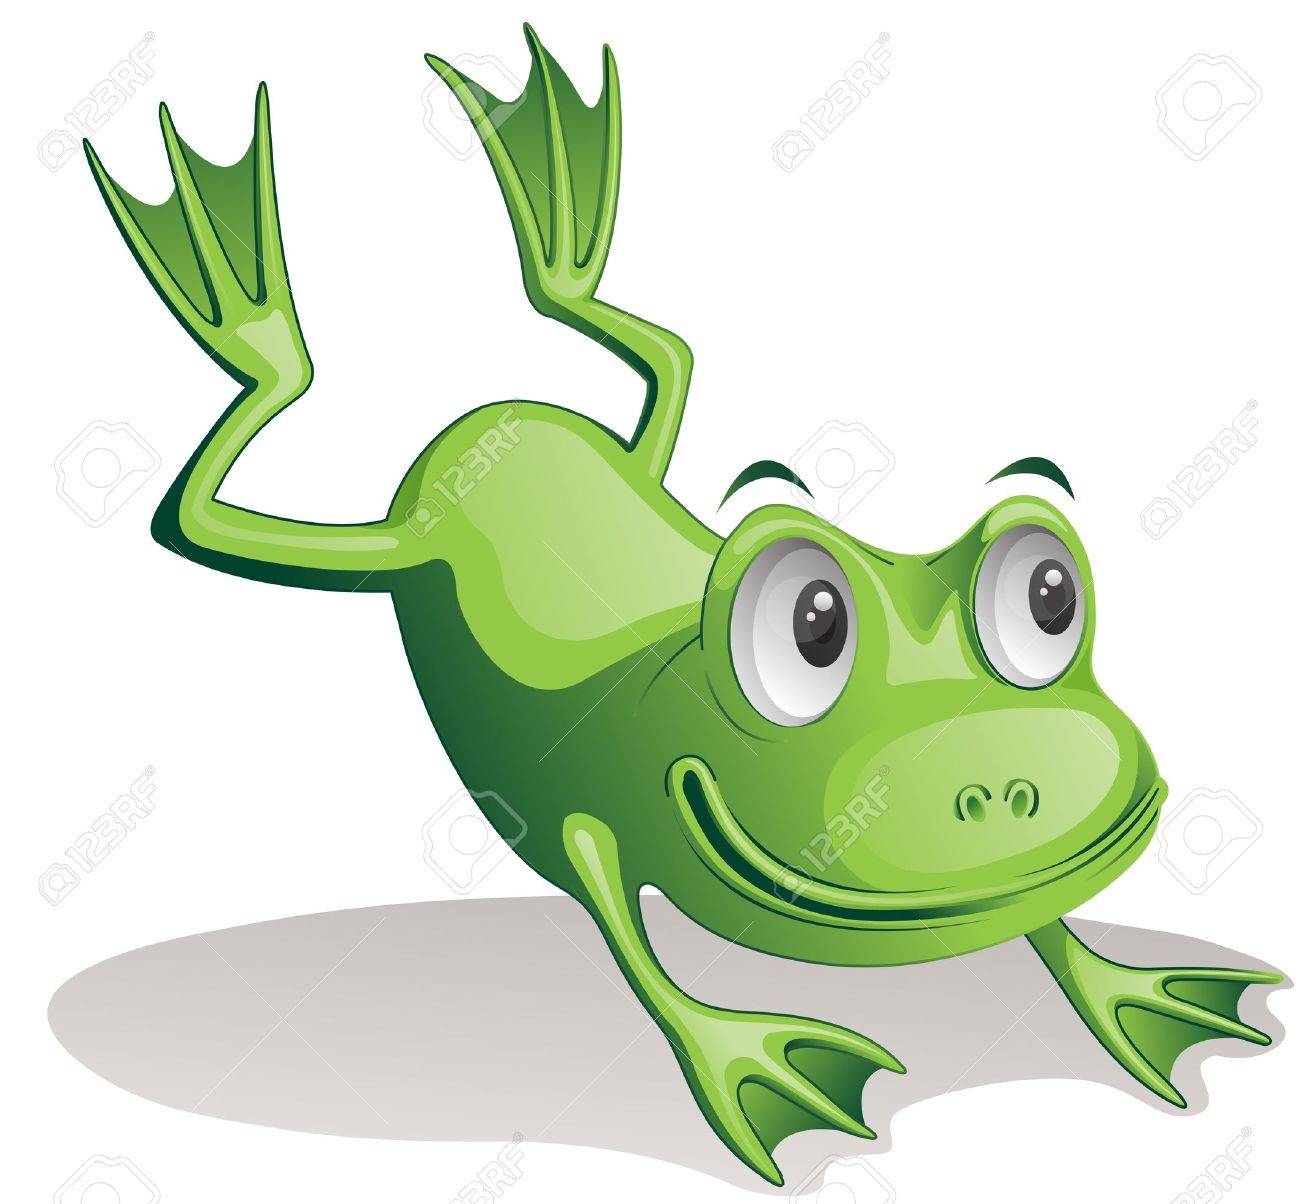 Introduction to The Jumping Frog from Sketches, New and Old